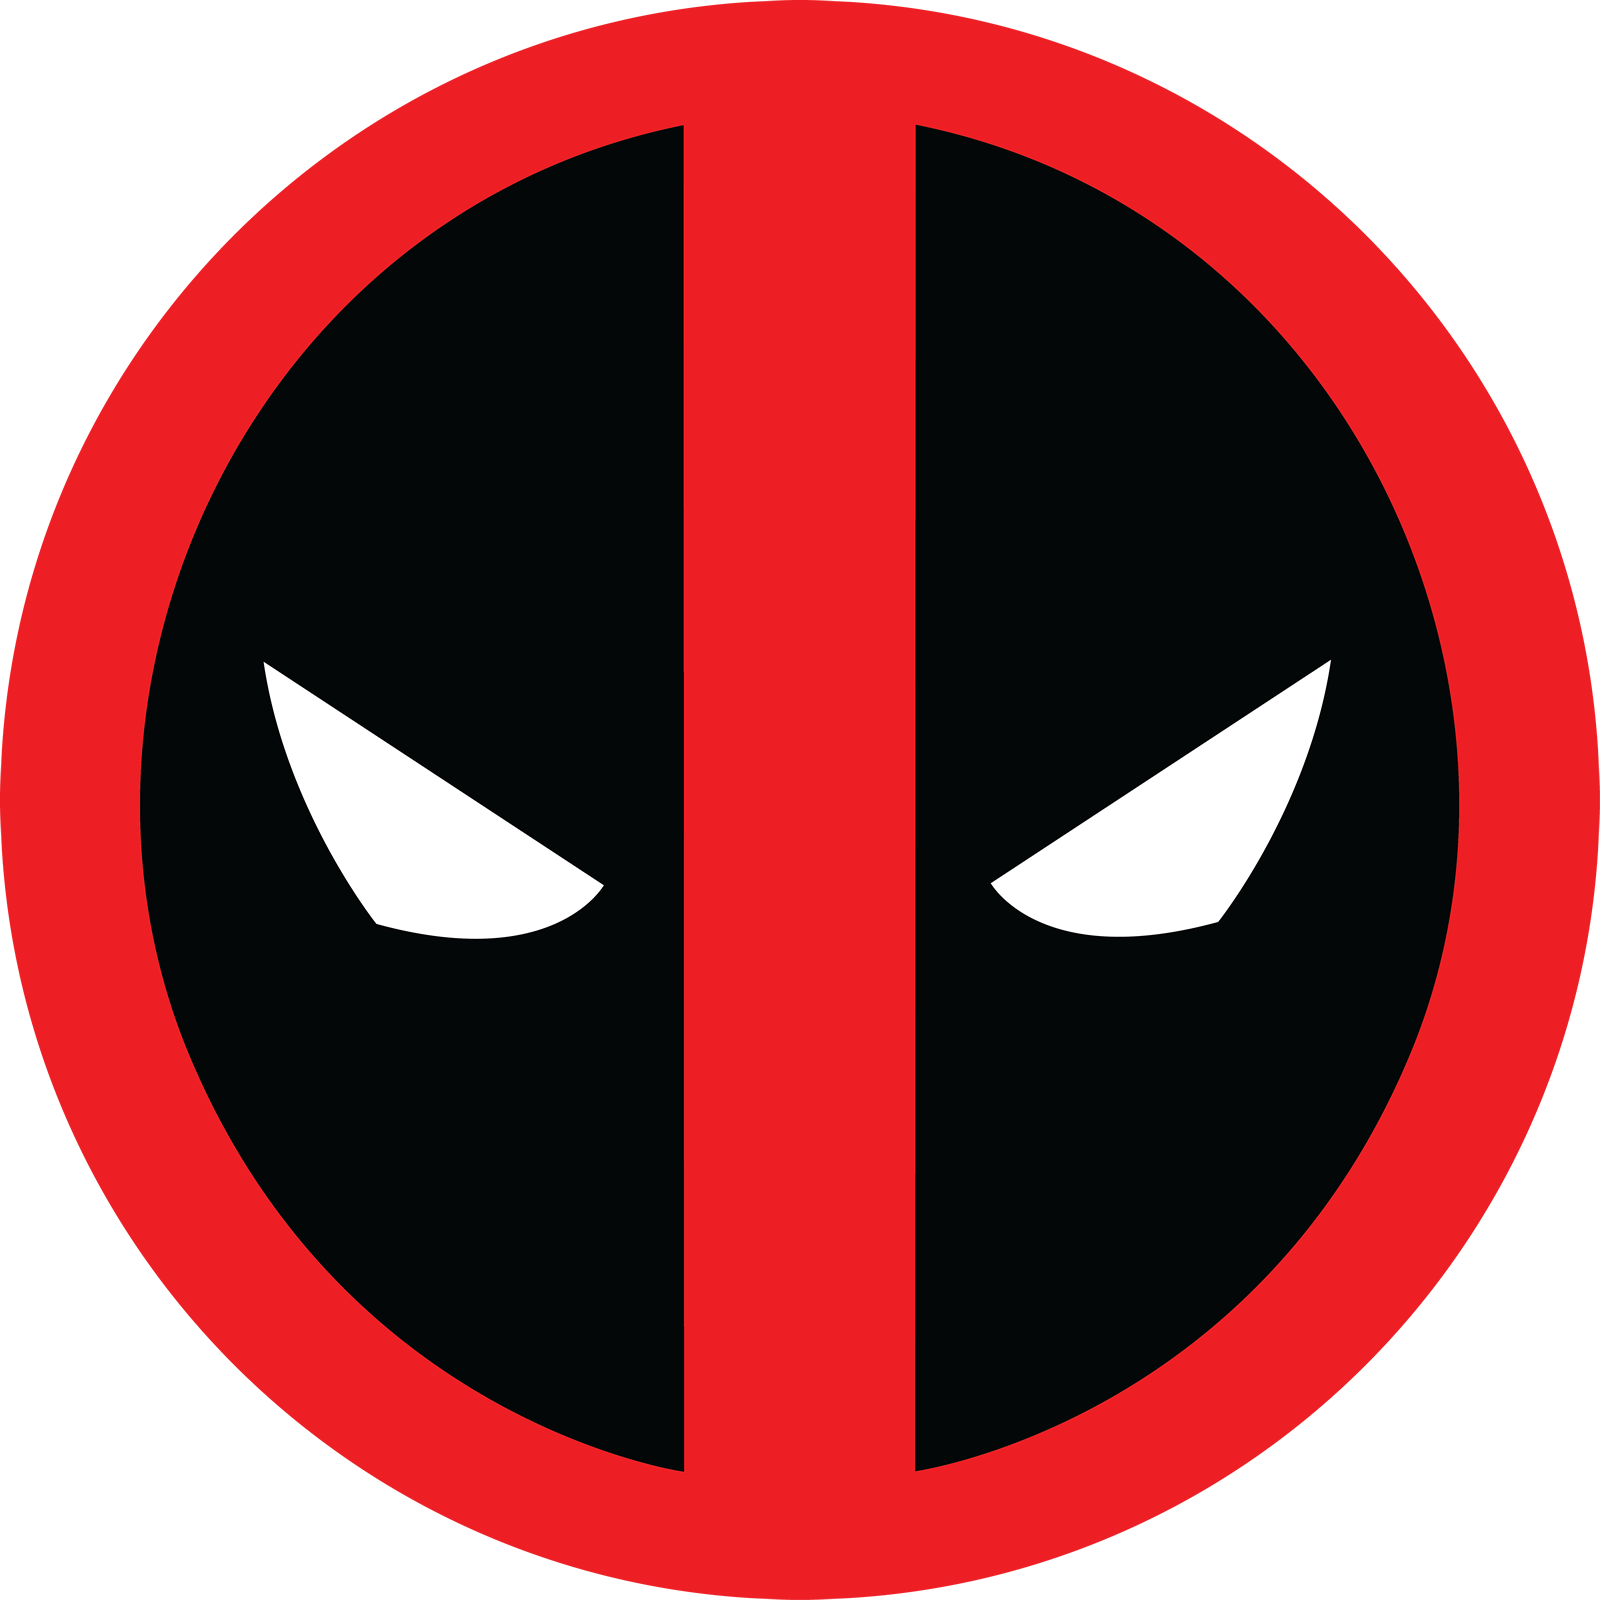 Sign svg deadpool. Image result for circut